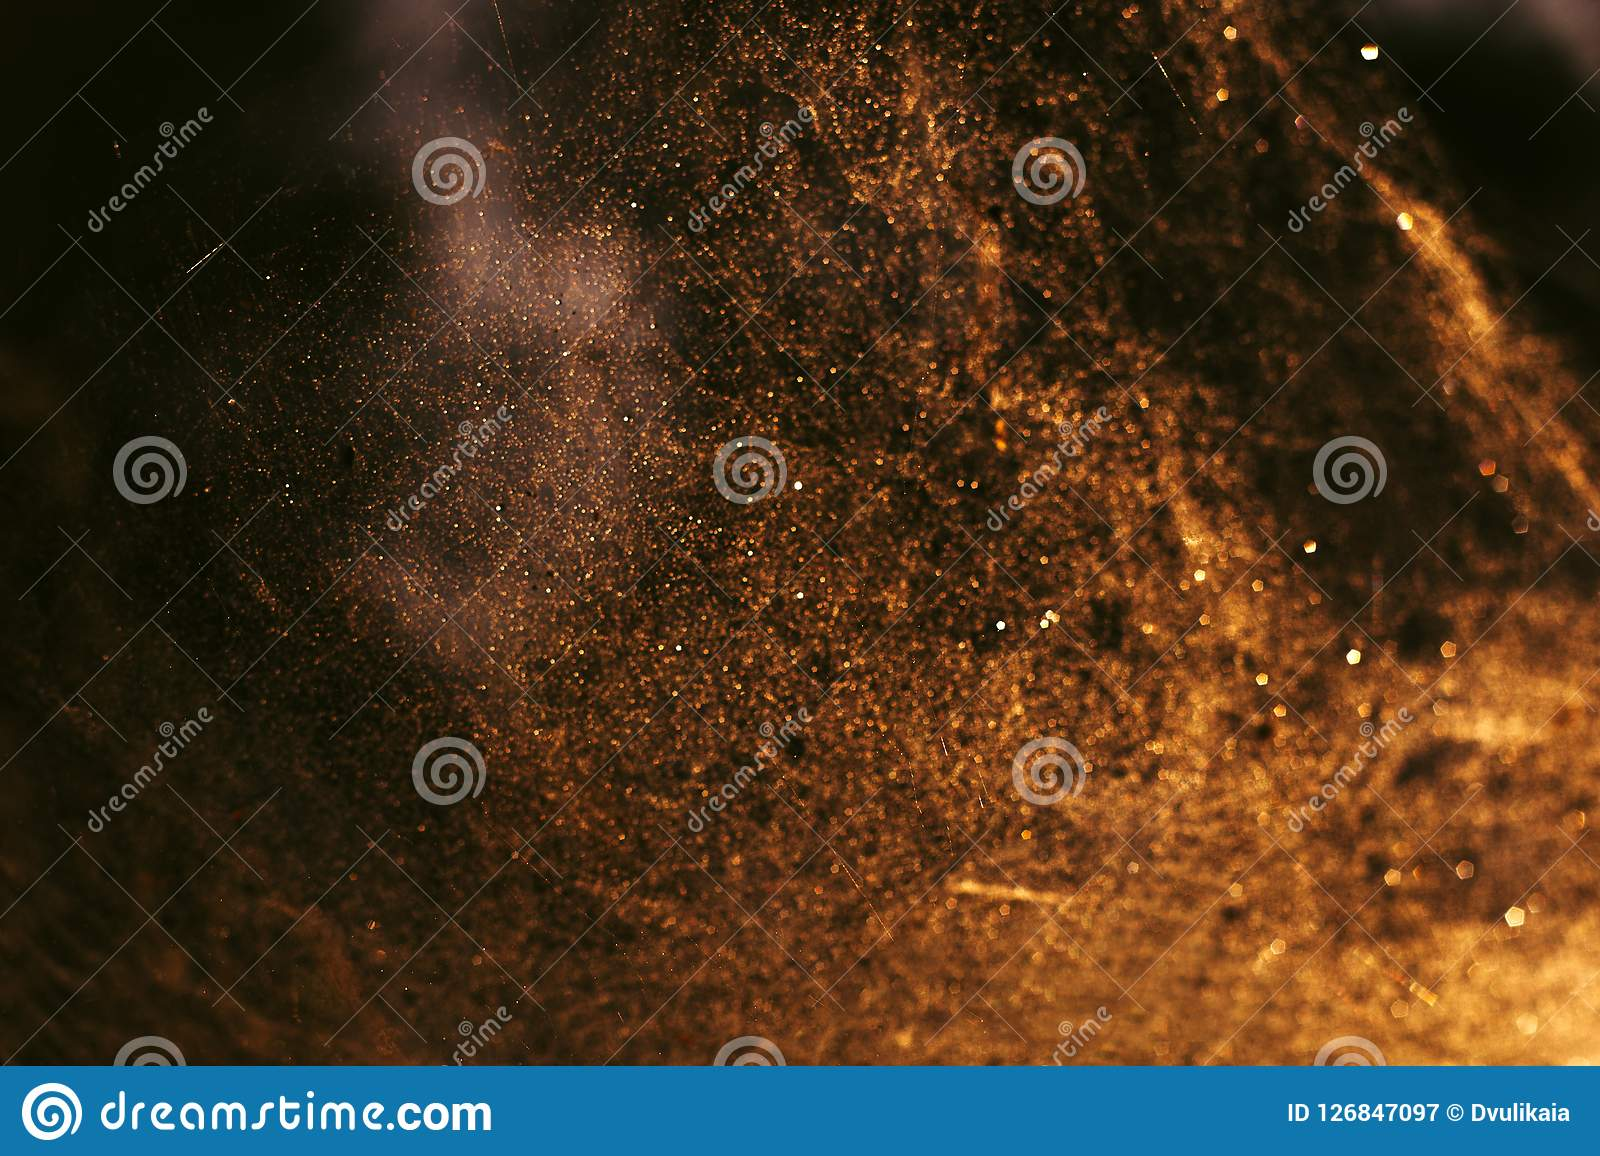 Abstract golden festive blurred background